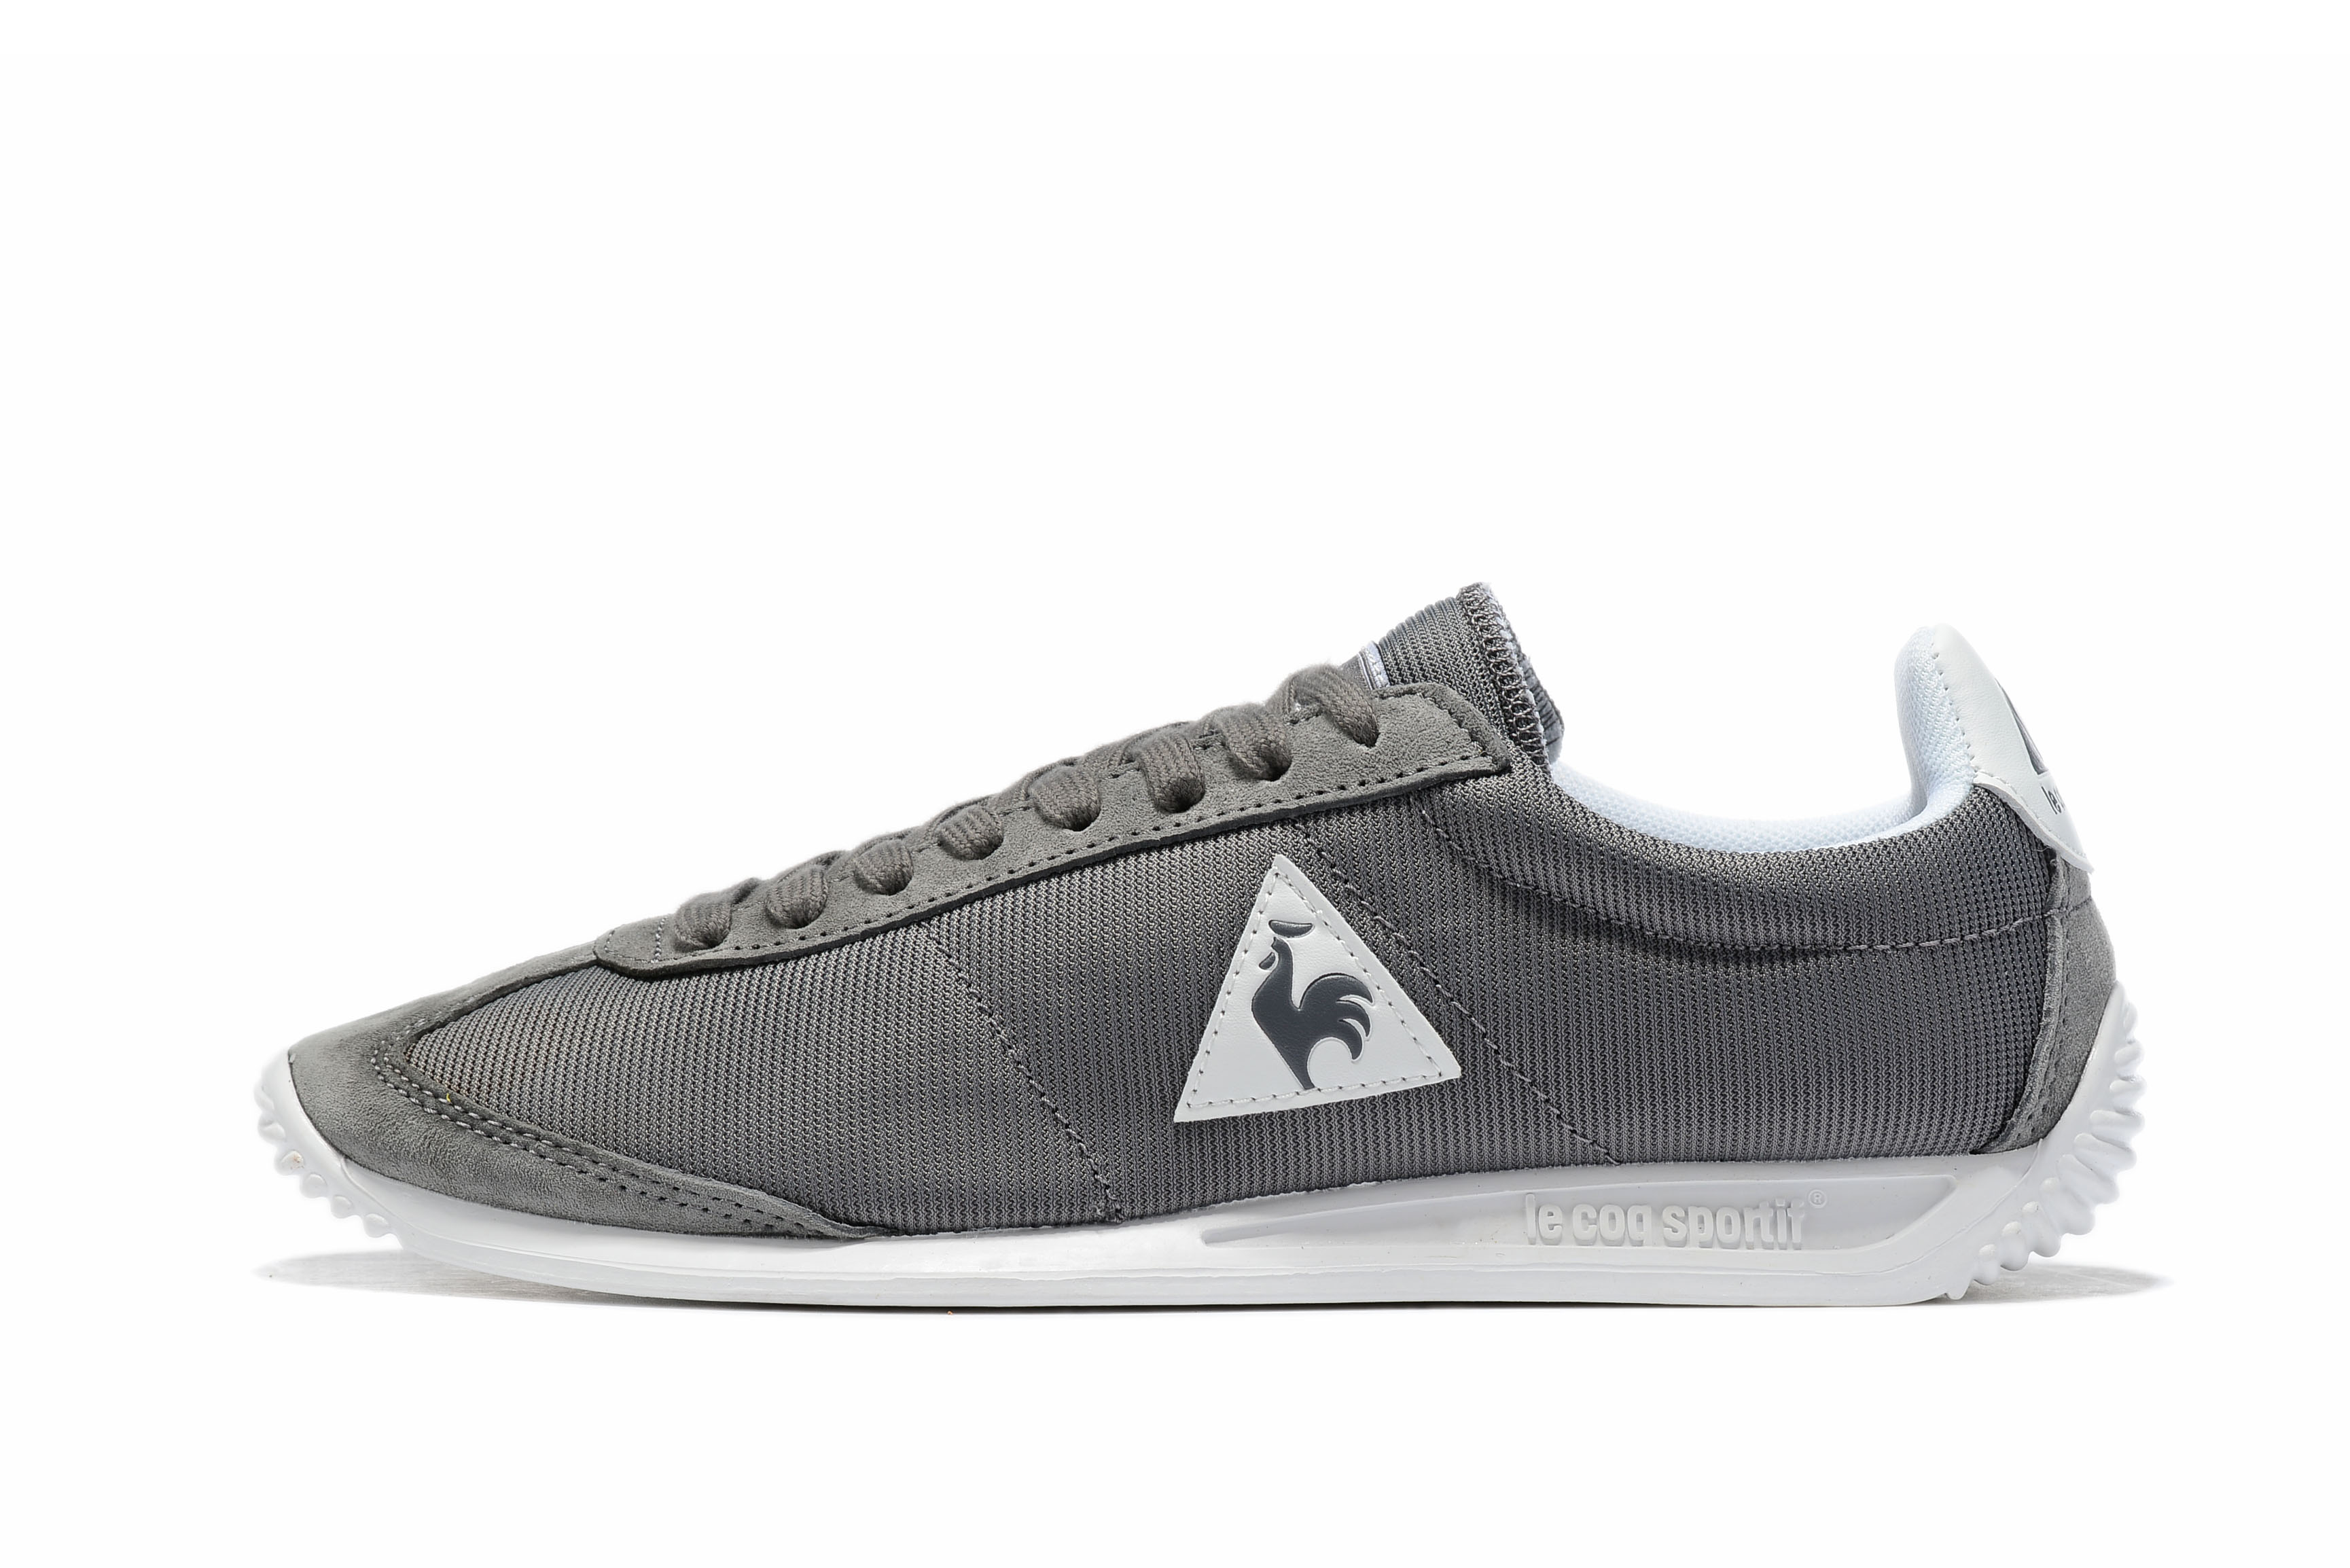 New Original Le Coq Sportif Mesh Men's Running Shoes Sneakers Fashion Breathable Men Women Couple Solid Color Running Shoes